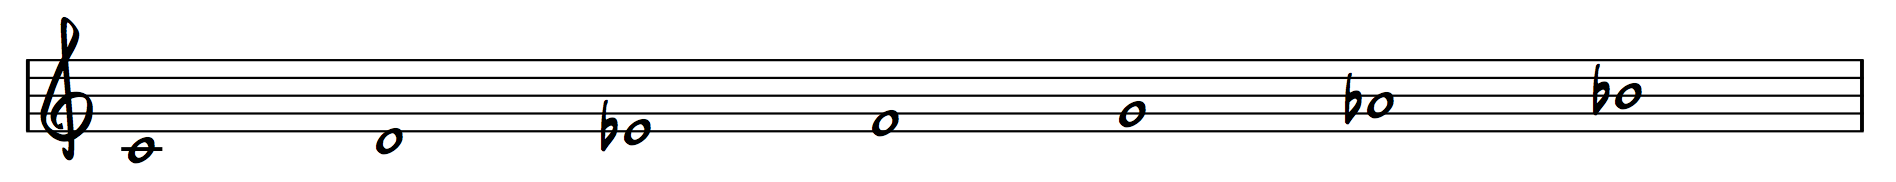 13 - C Natural Minor Scale